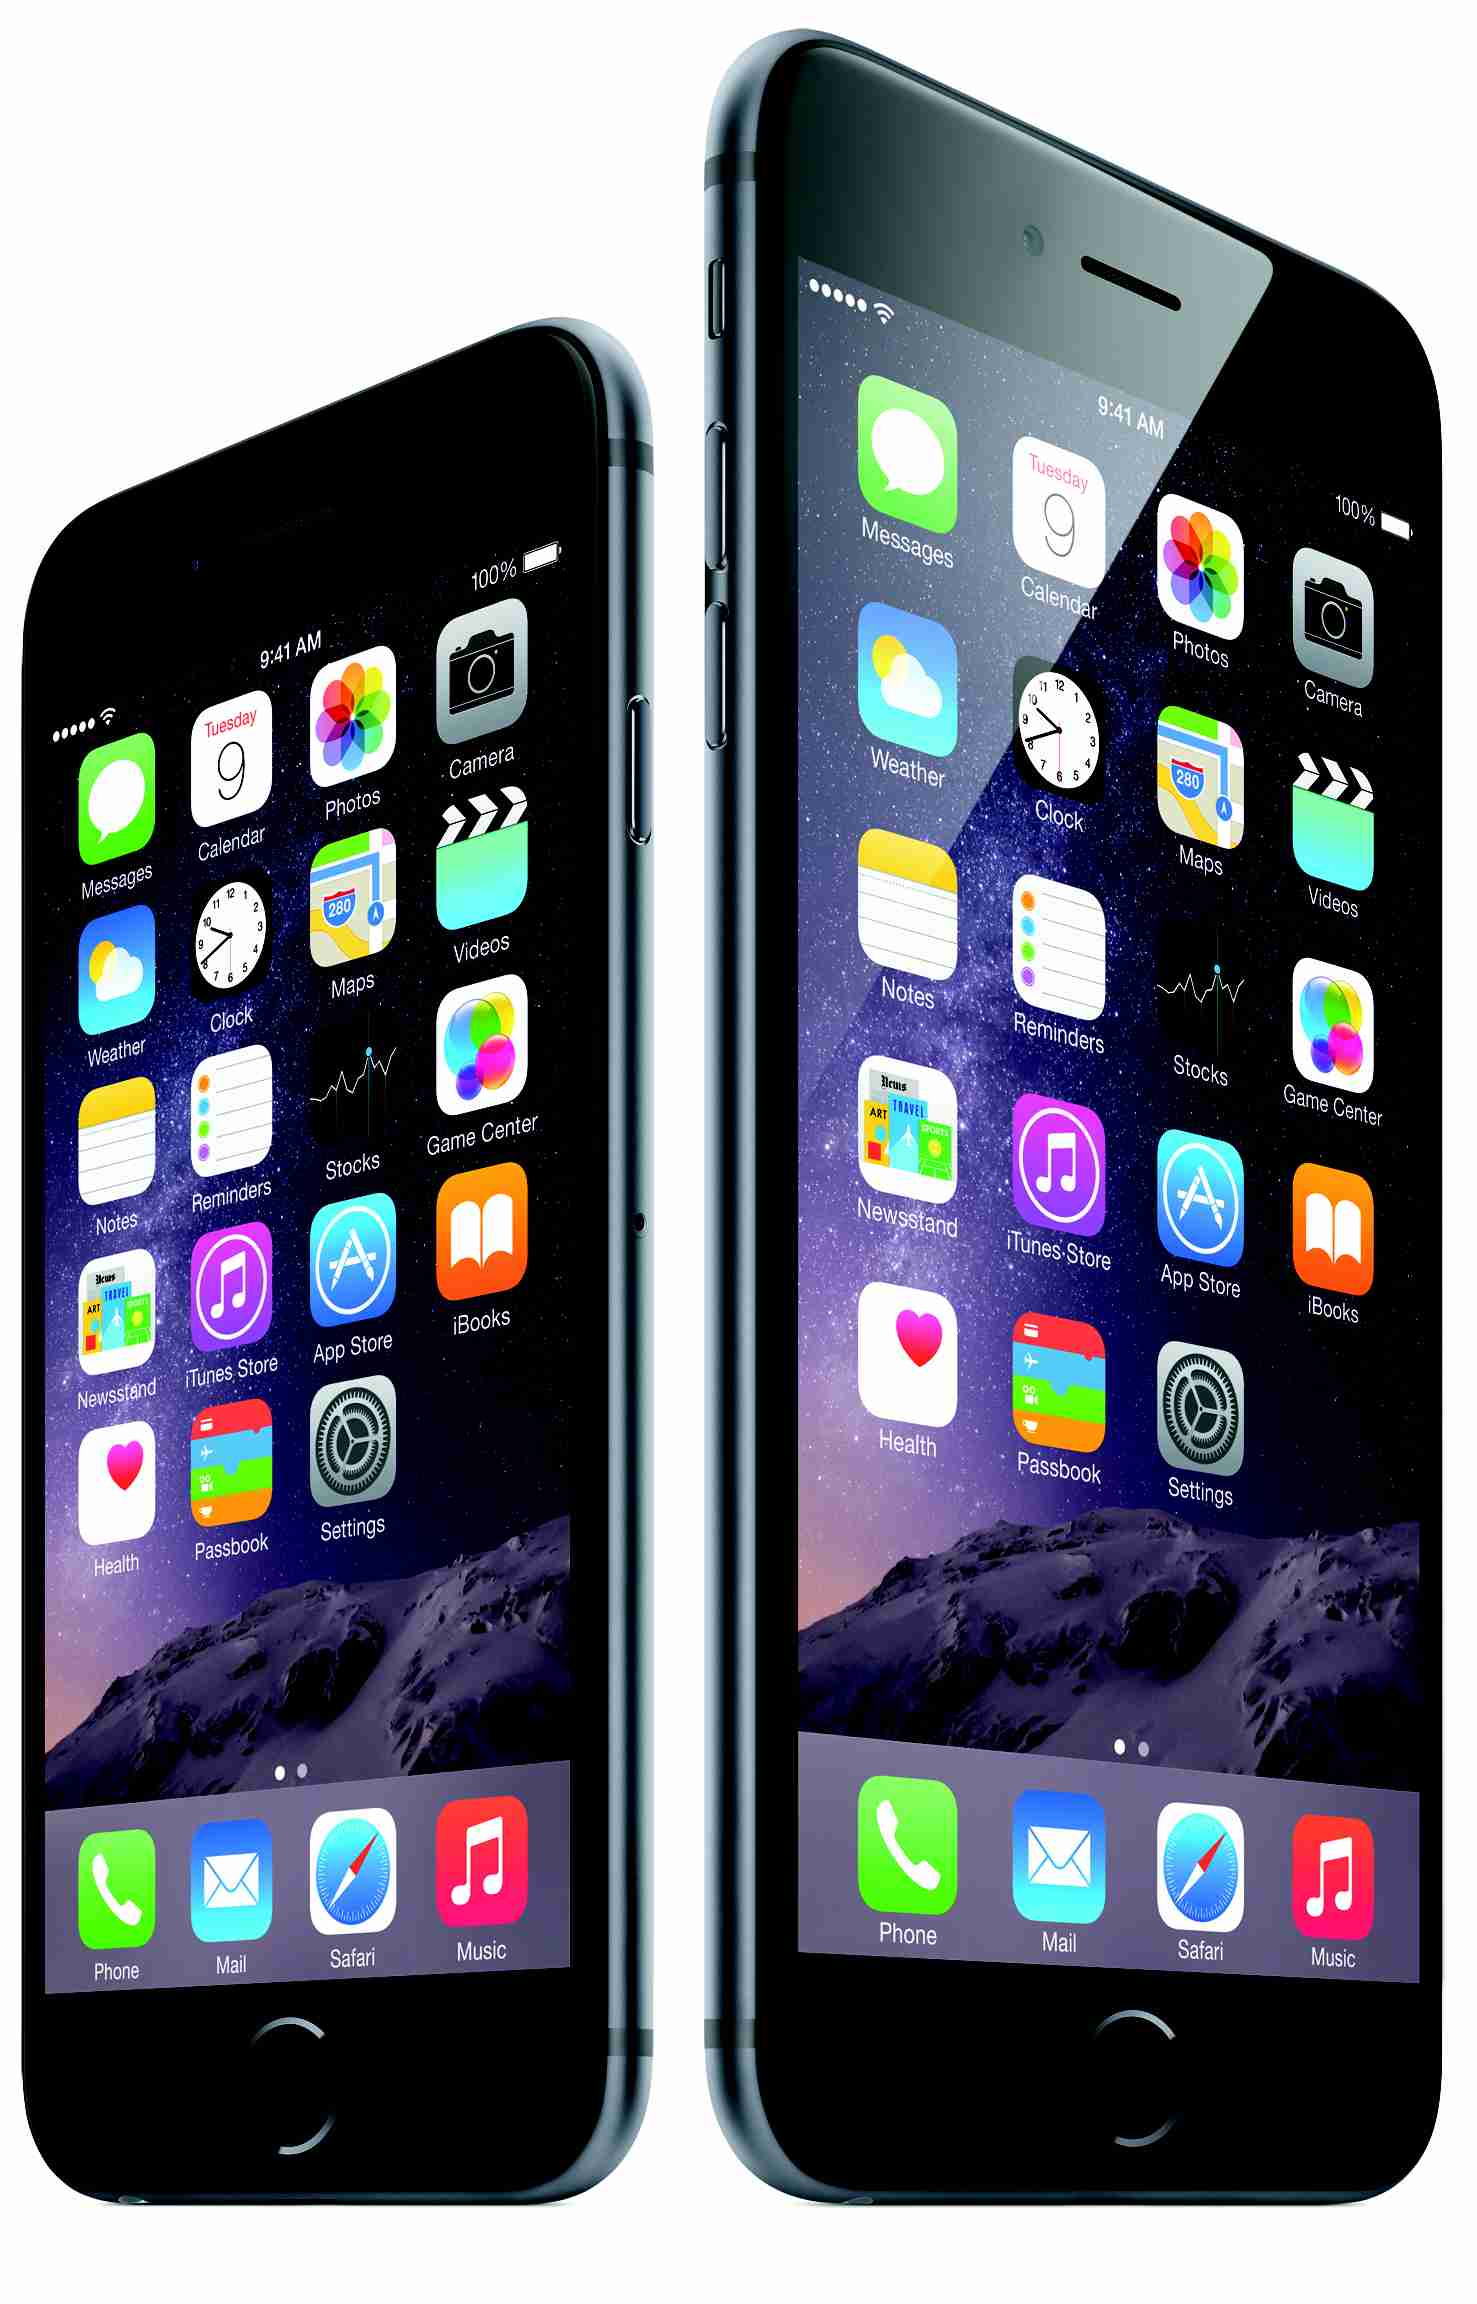 iPhone 6 and 6 Plus side by side